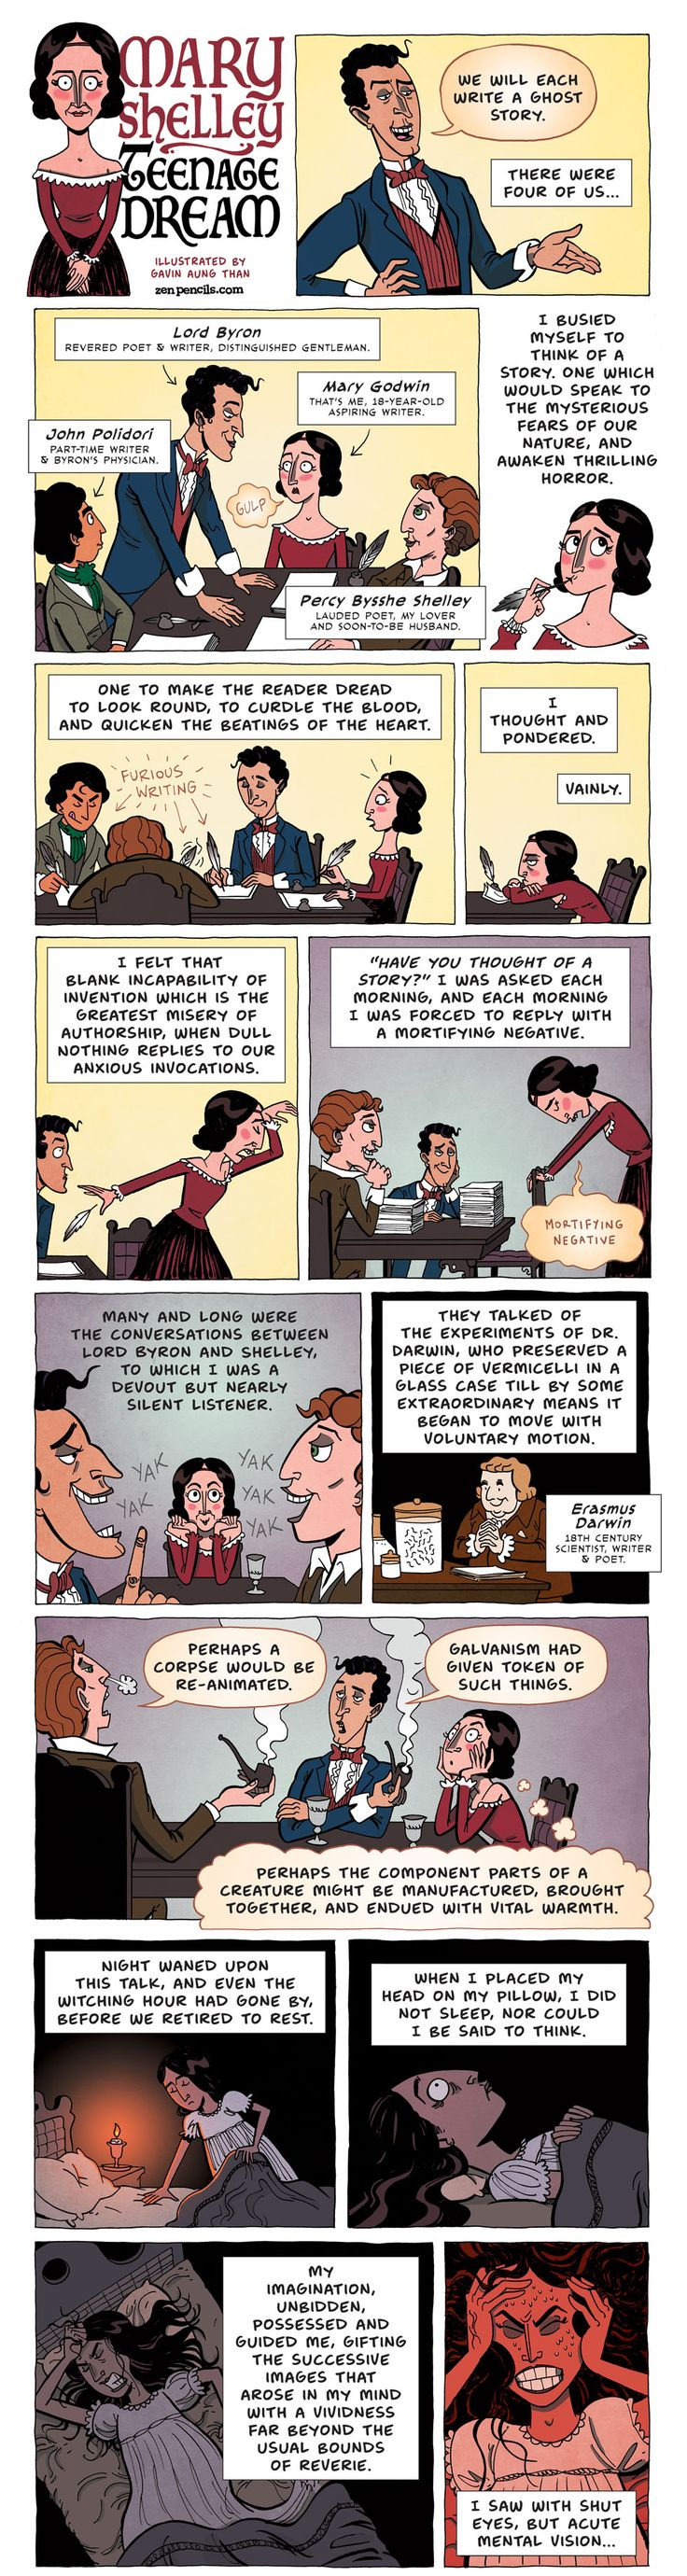 ZEN PENCILS » 213. MARY SHELLEY: Teenage dream